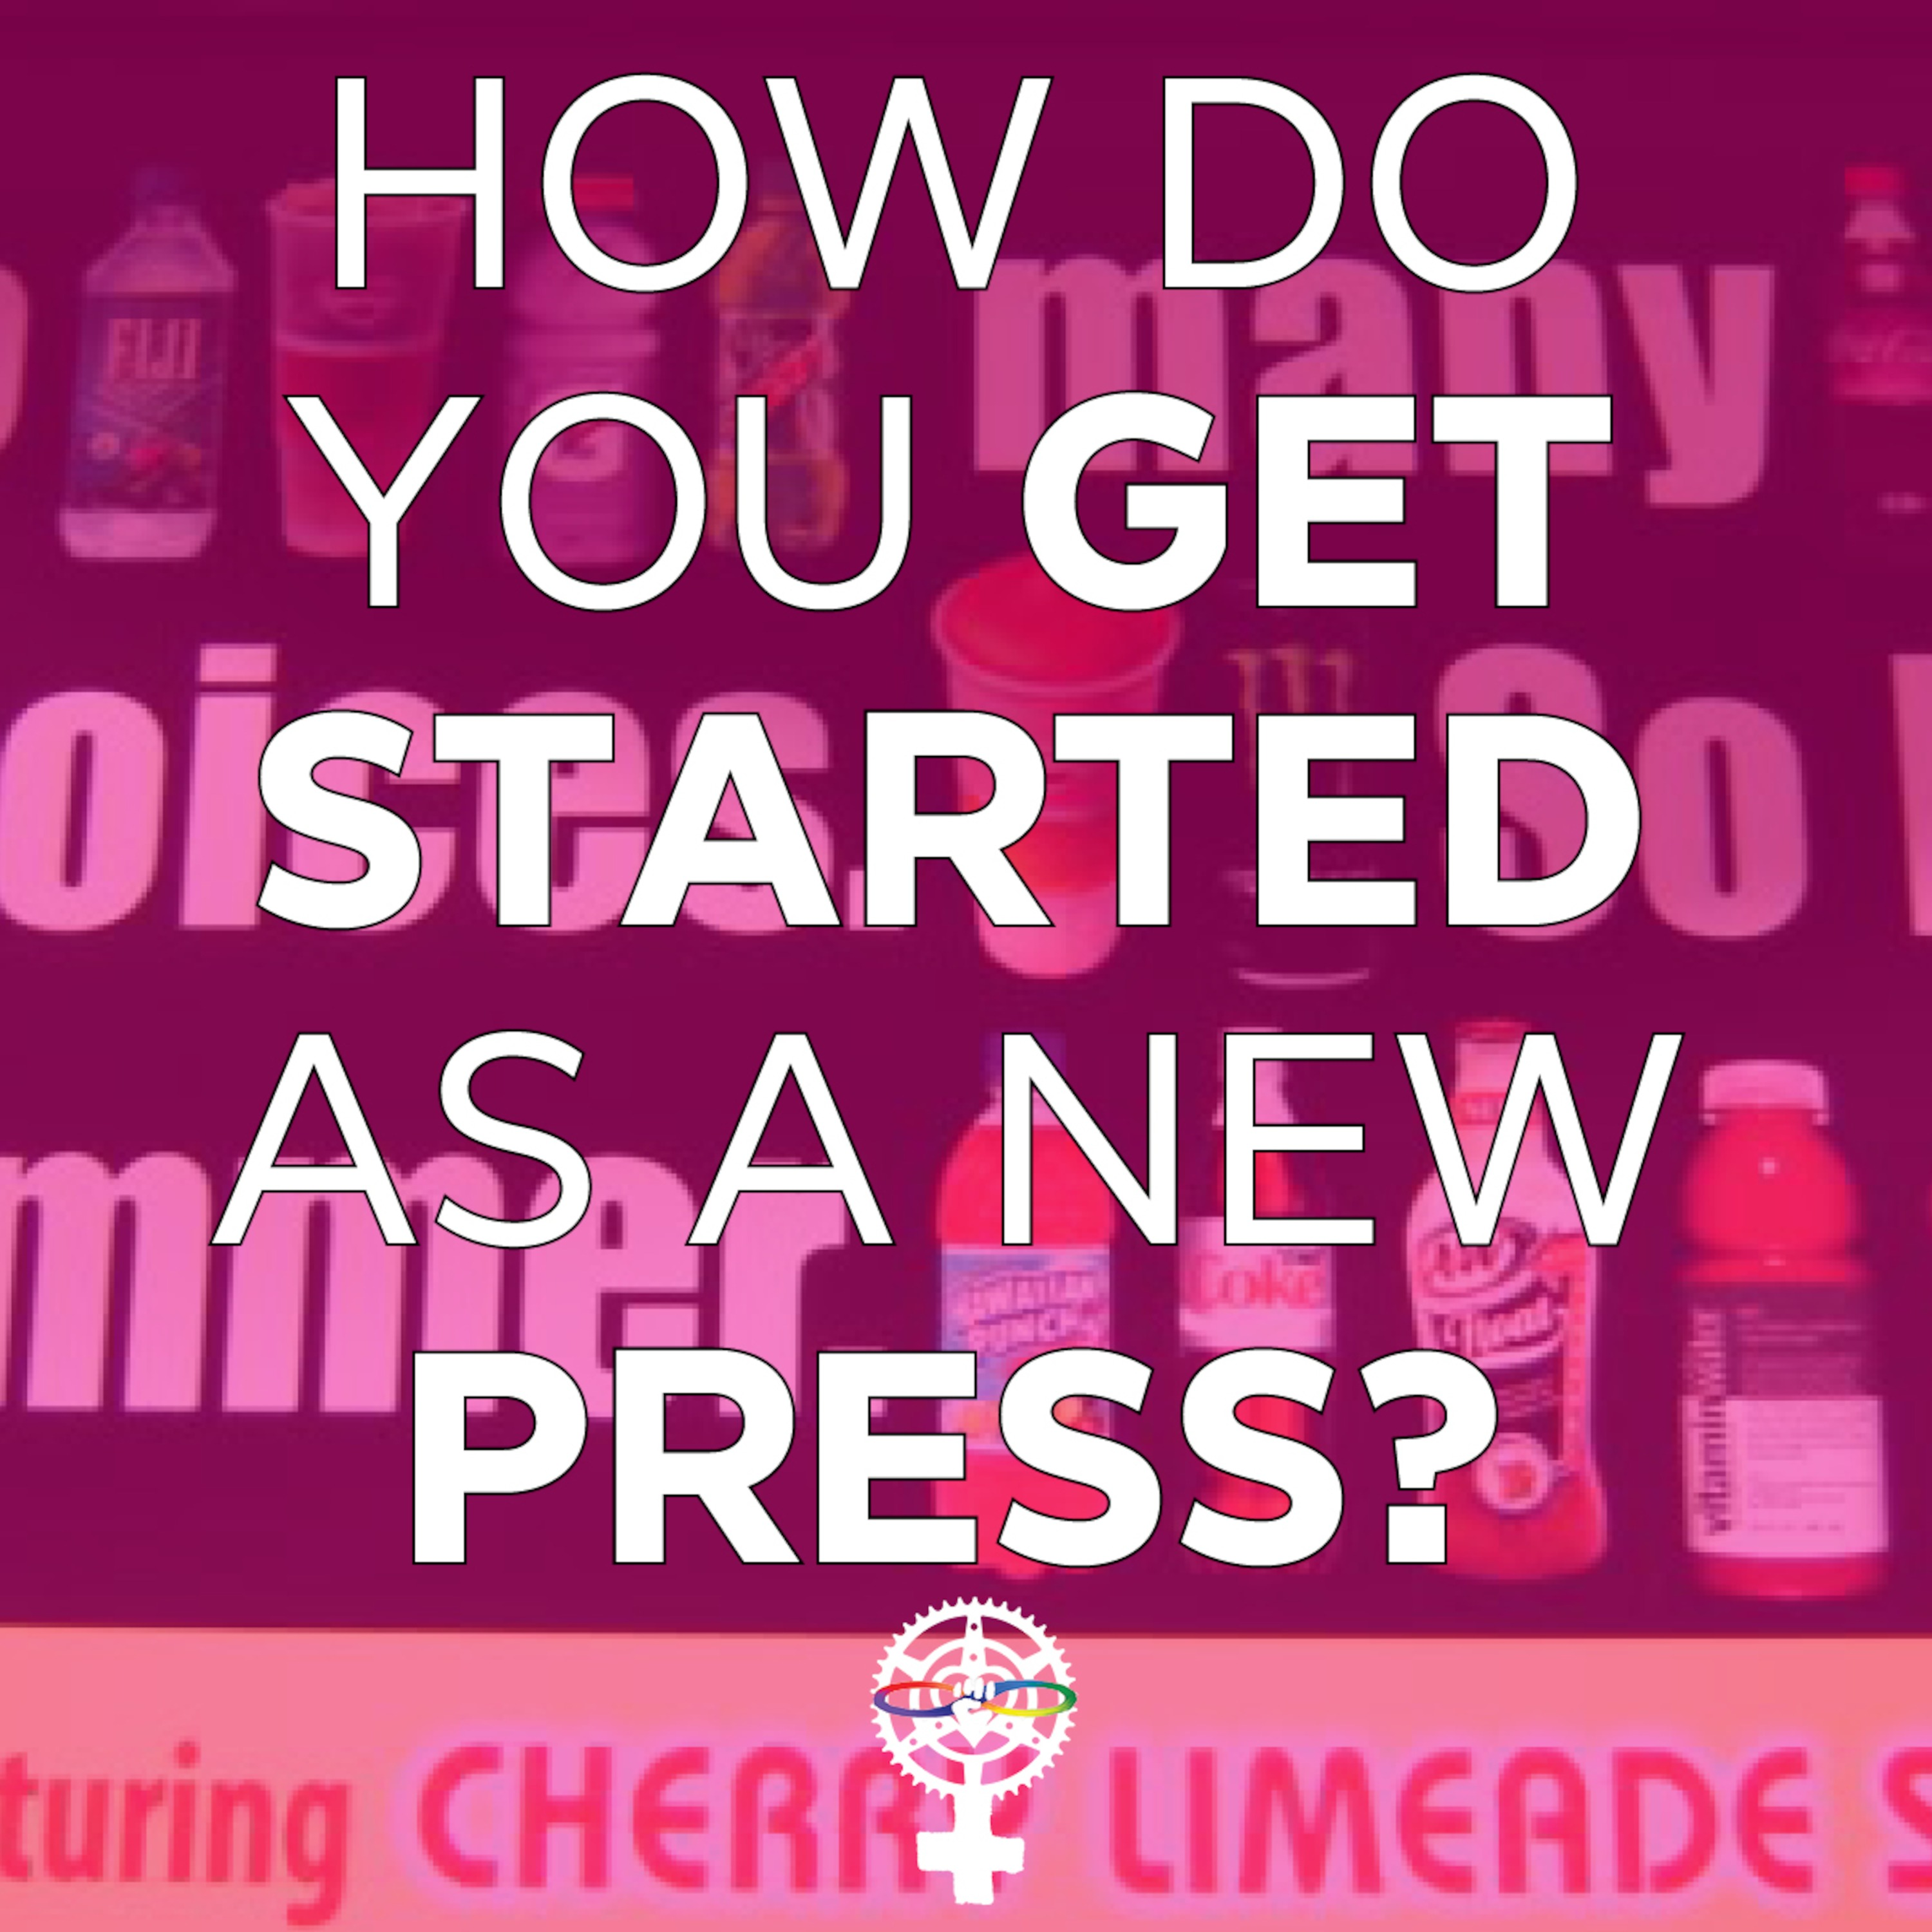 How do i get started as a new publisher?